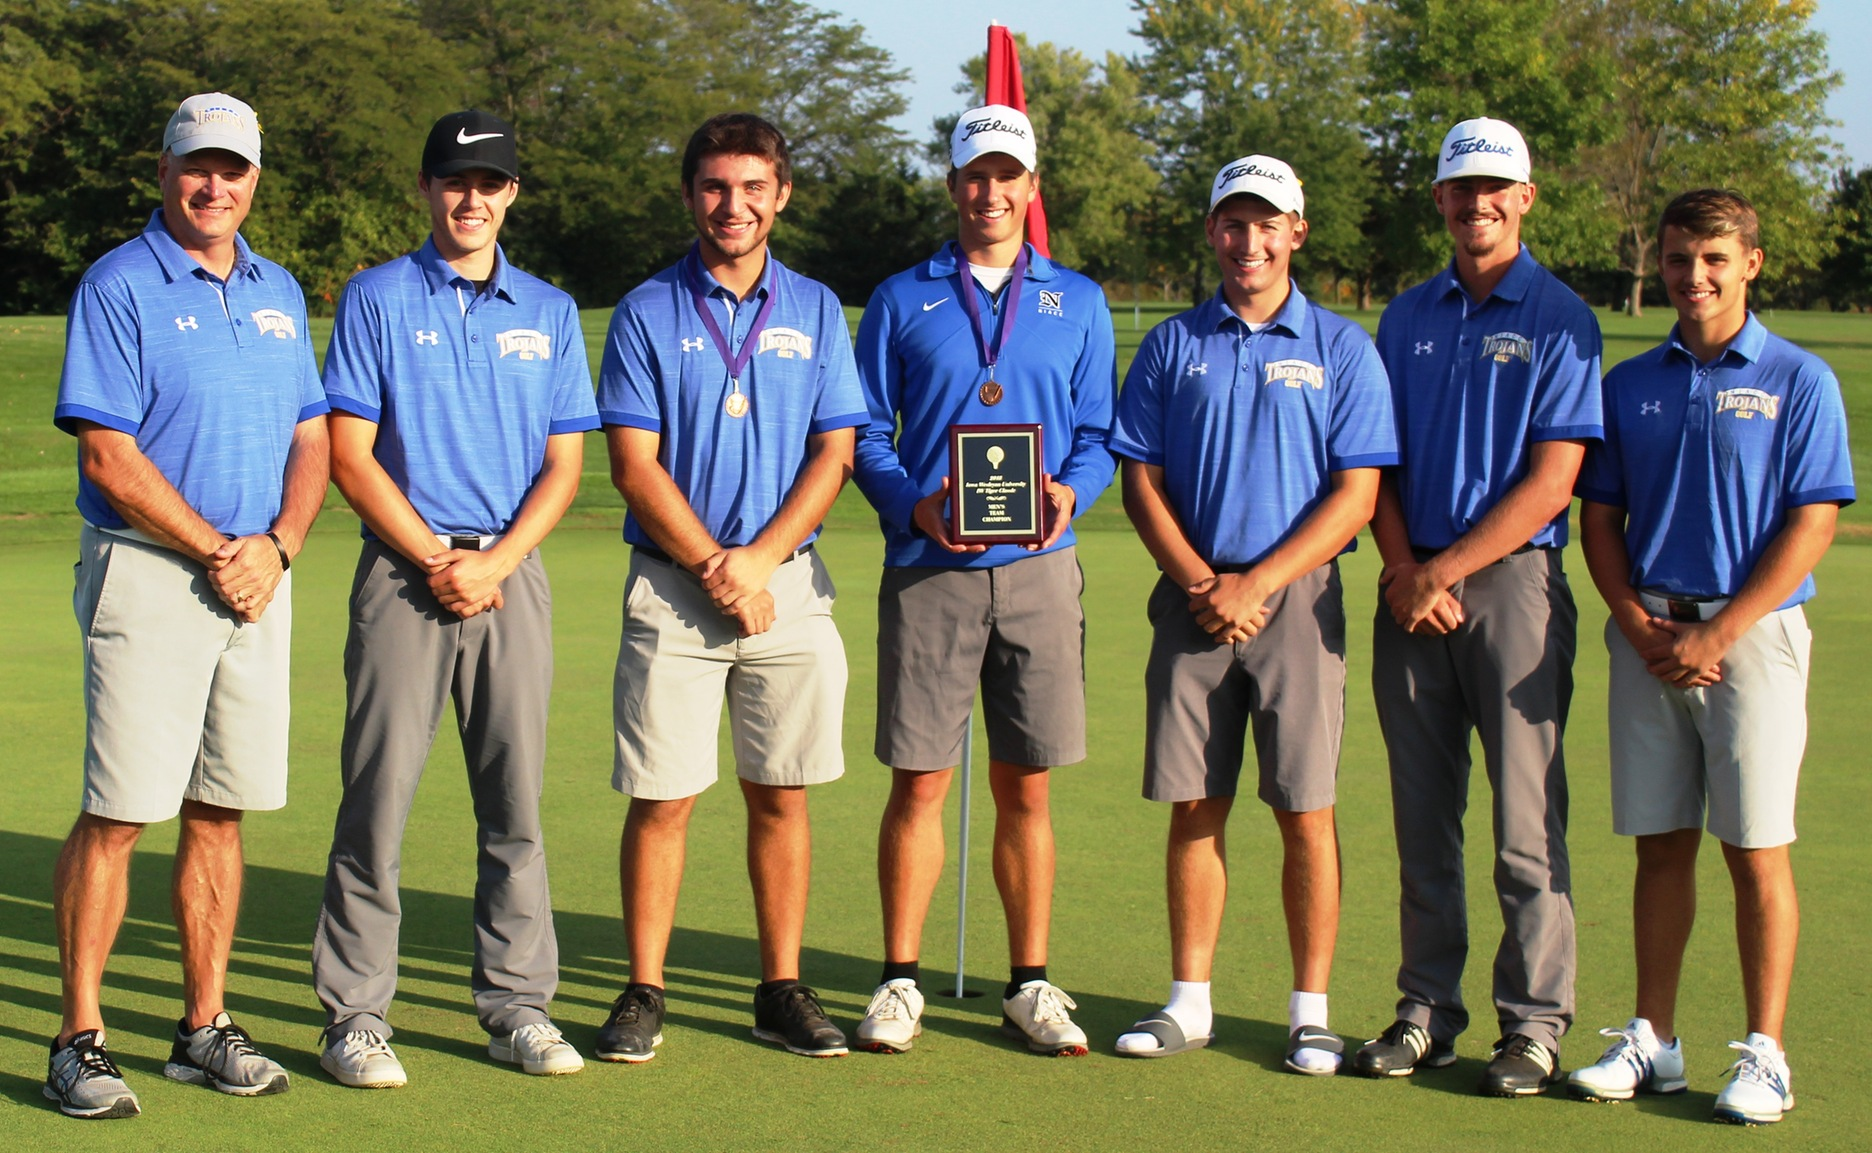 The NIACC men's golf team with its winning plaque at the Iowa Wesleyan Tiger Classic.